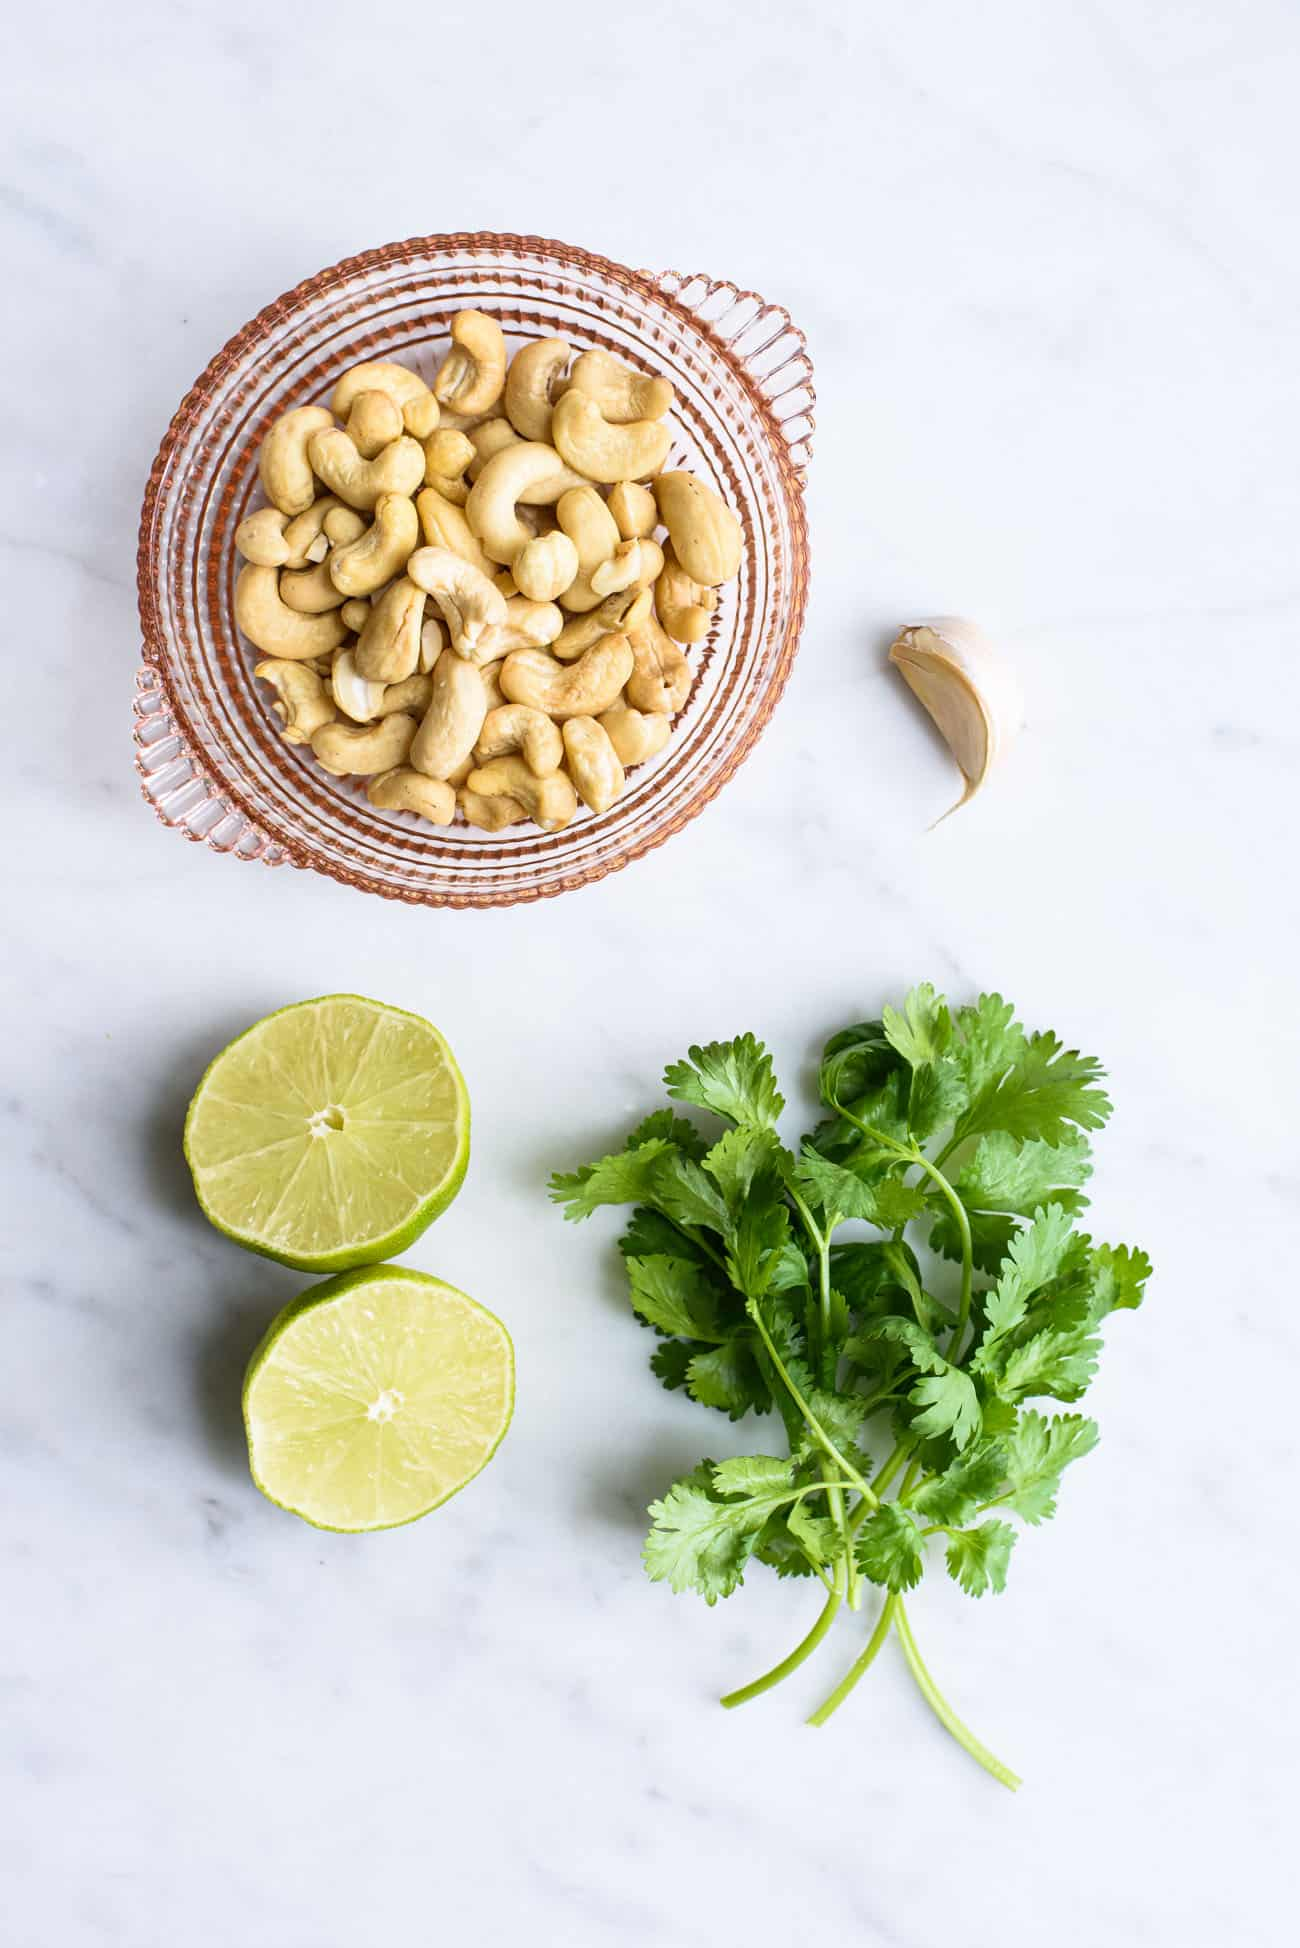 Cashews, lime, cilantro and garlic laid out on a marble table